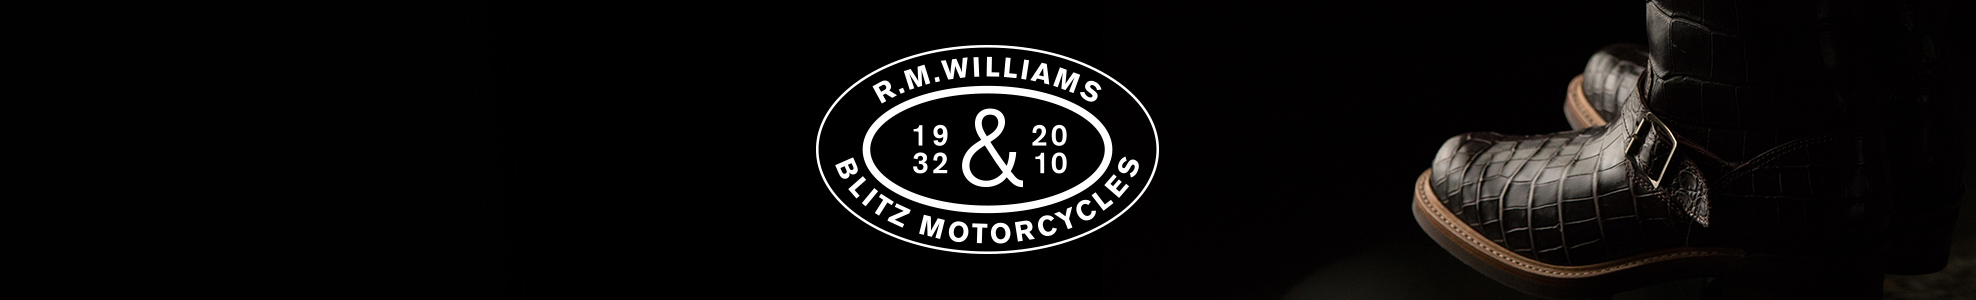 The R.M.Williams x Blitz Bike